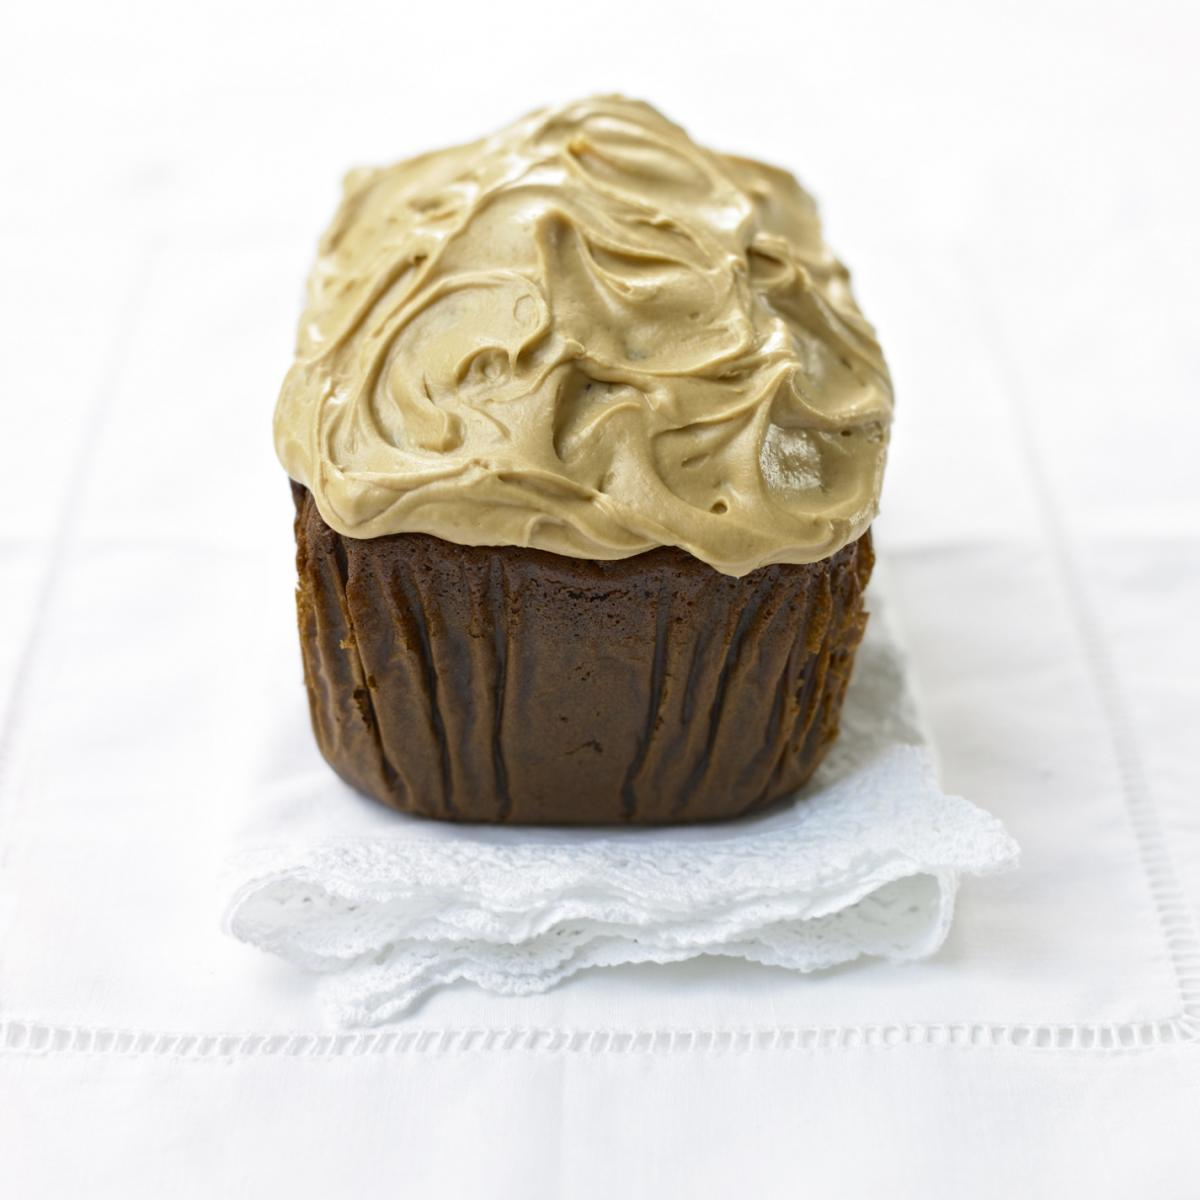 A picture of Delia's Sticky Toffee Loaf Cake with Fudge Icing recipe